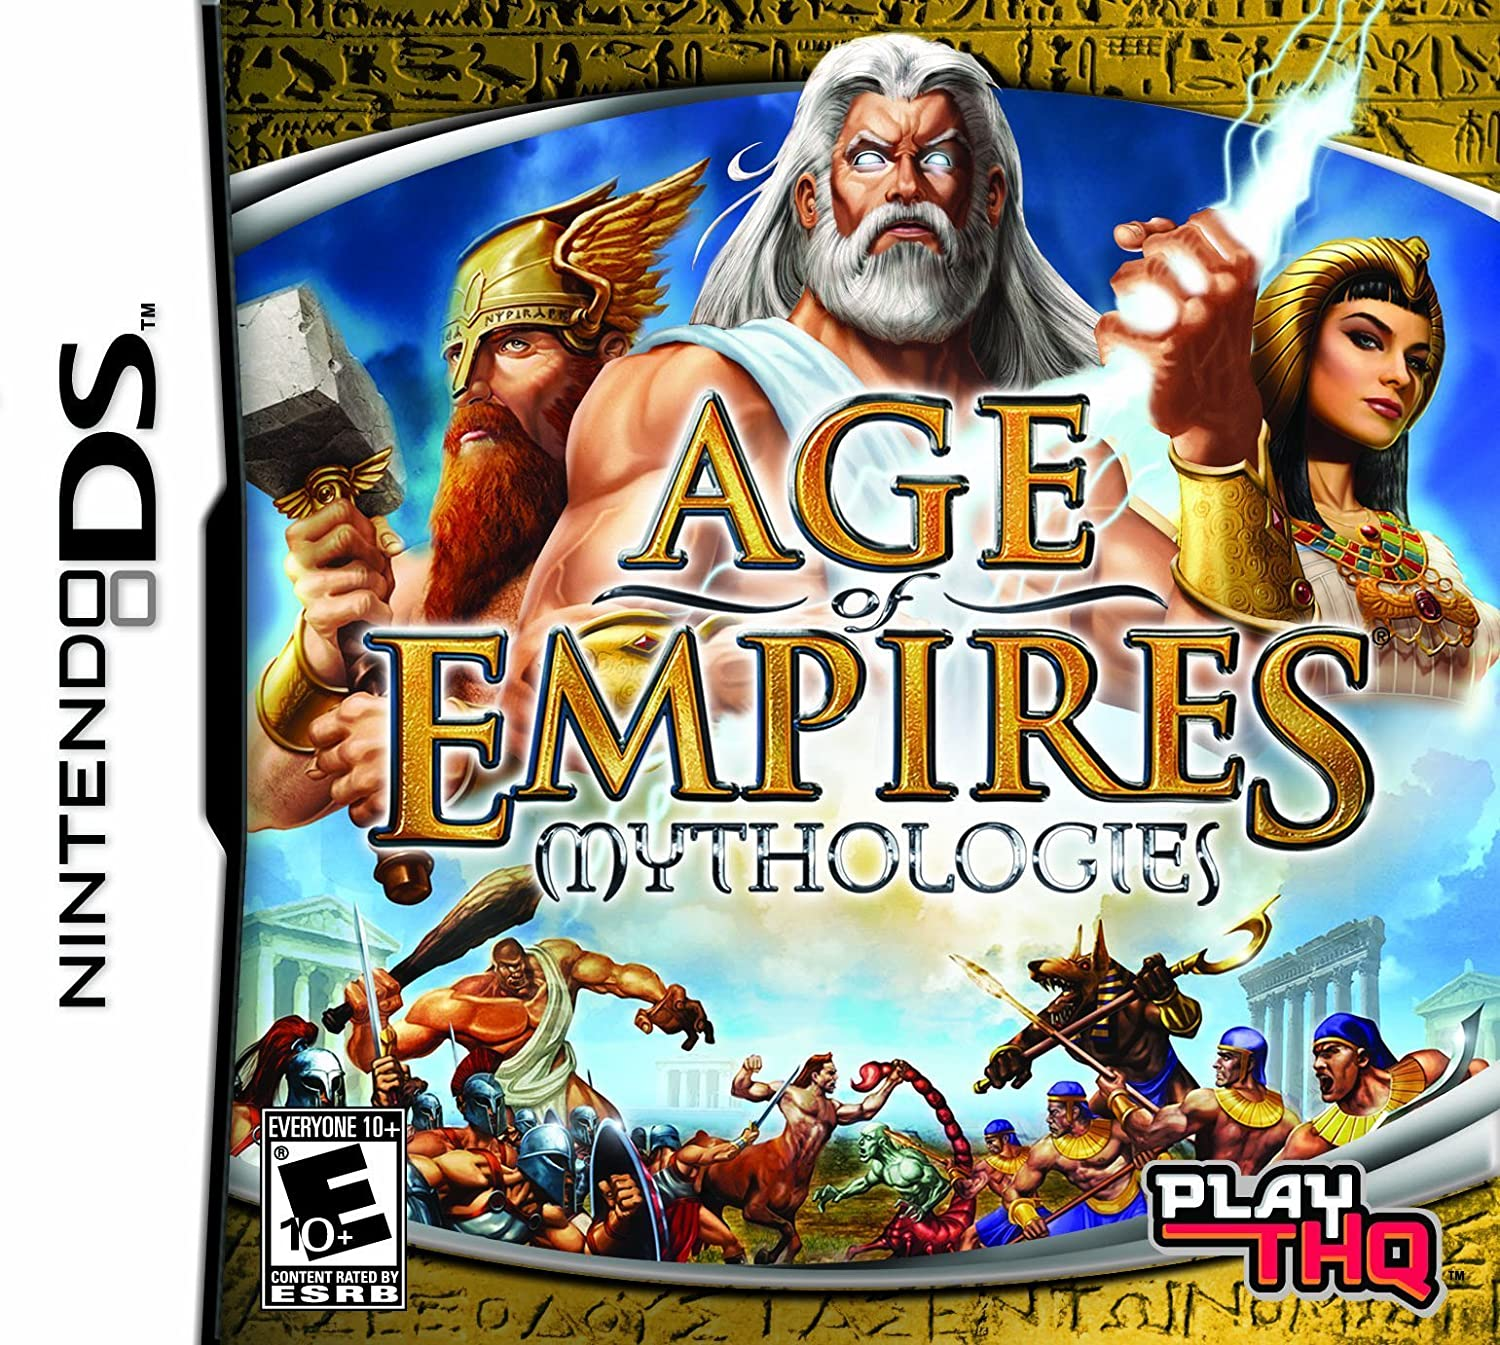 Age of Empires Mythologies facts and statistics